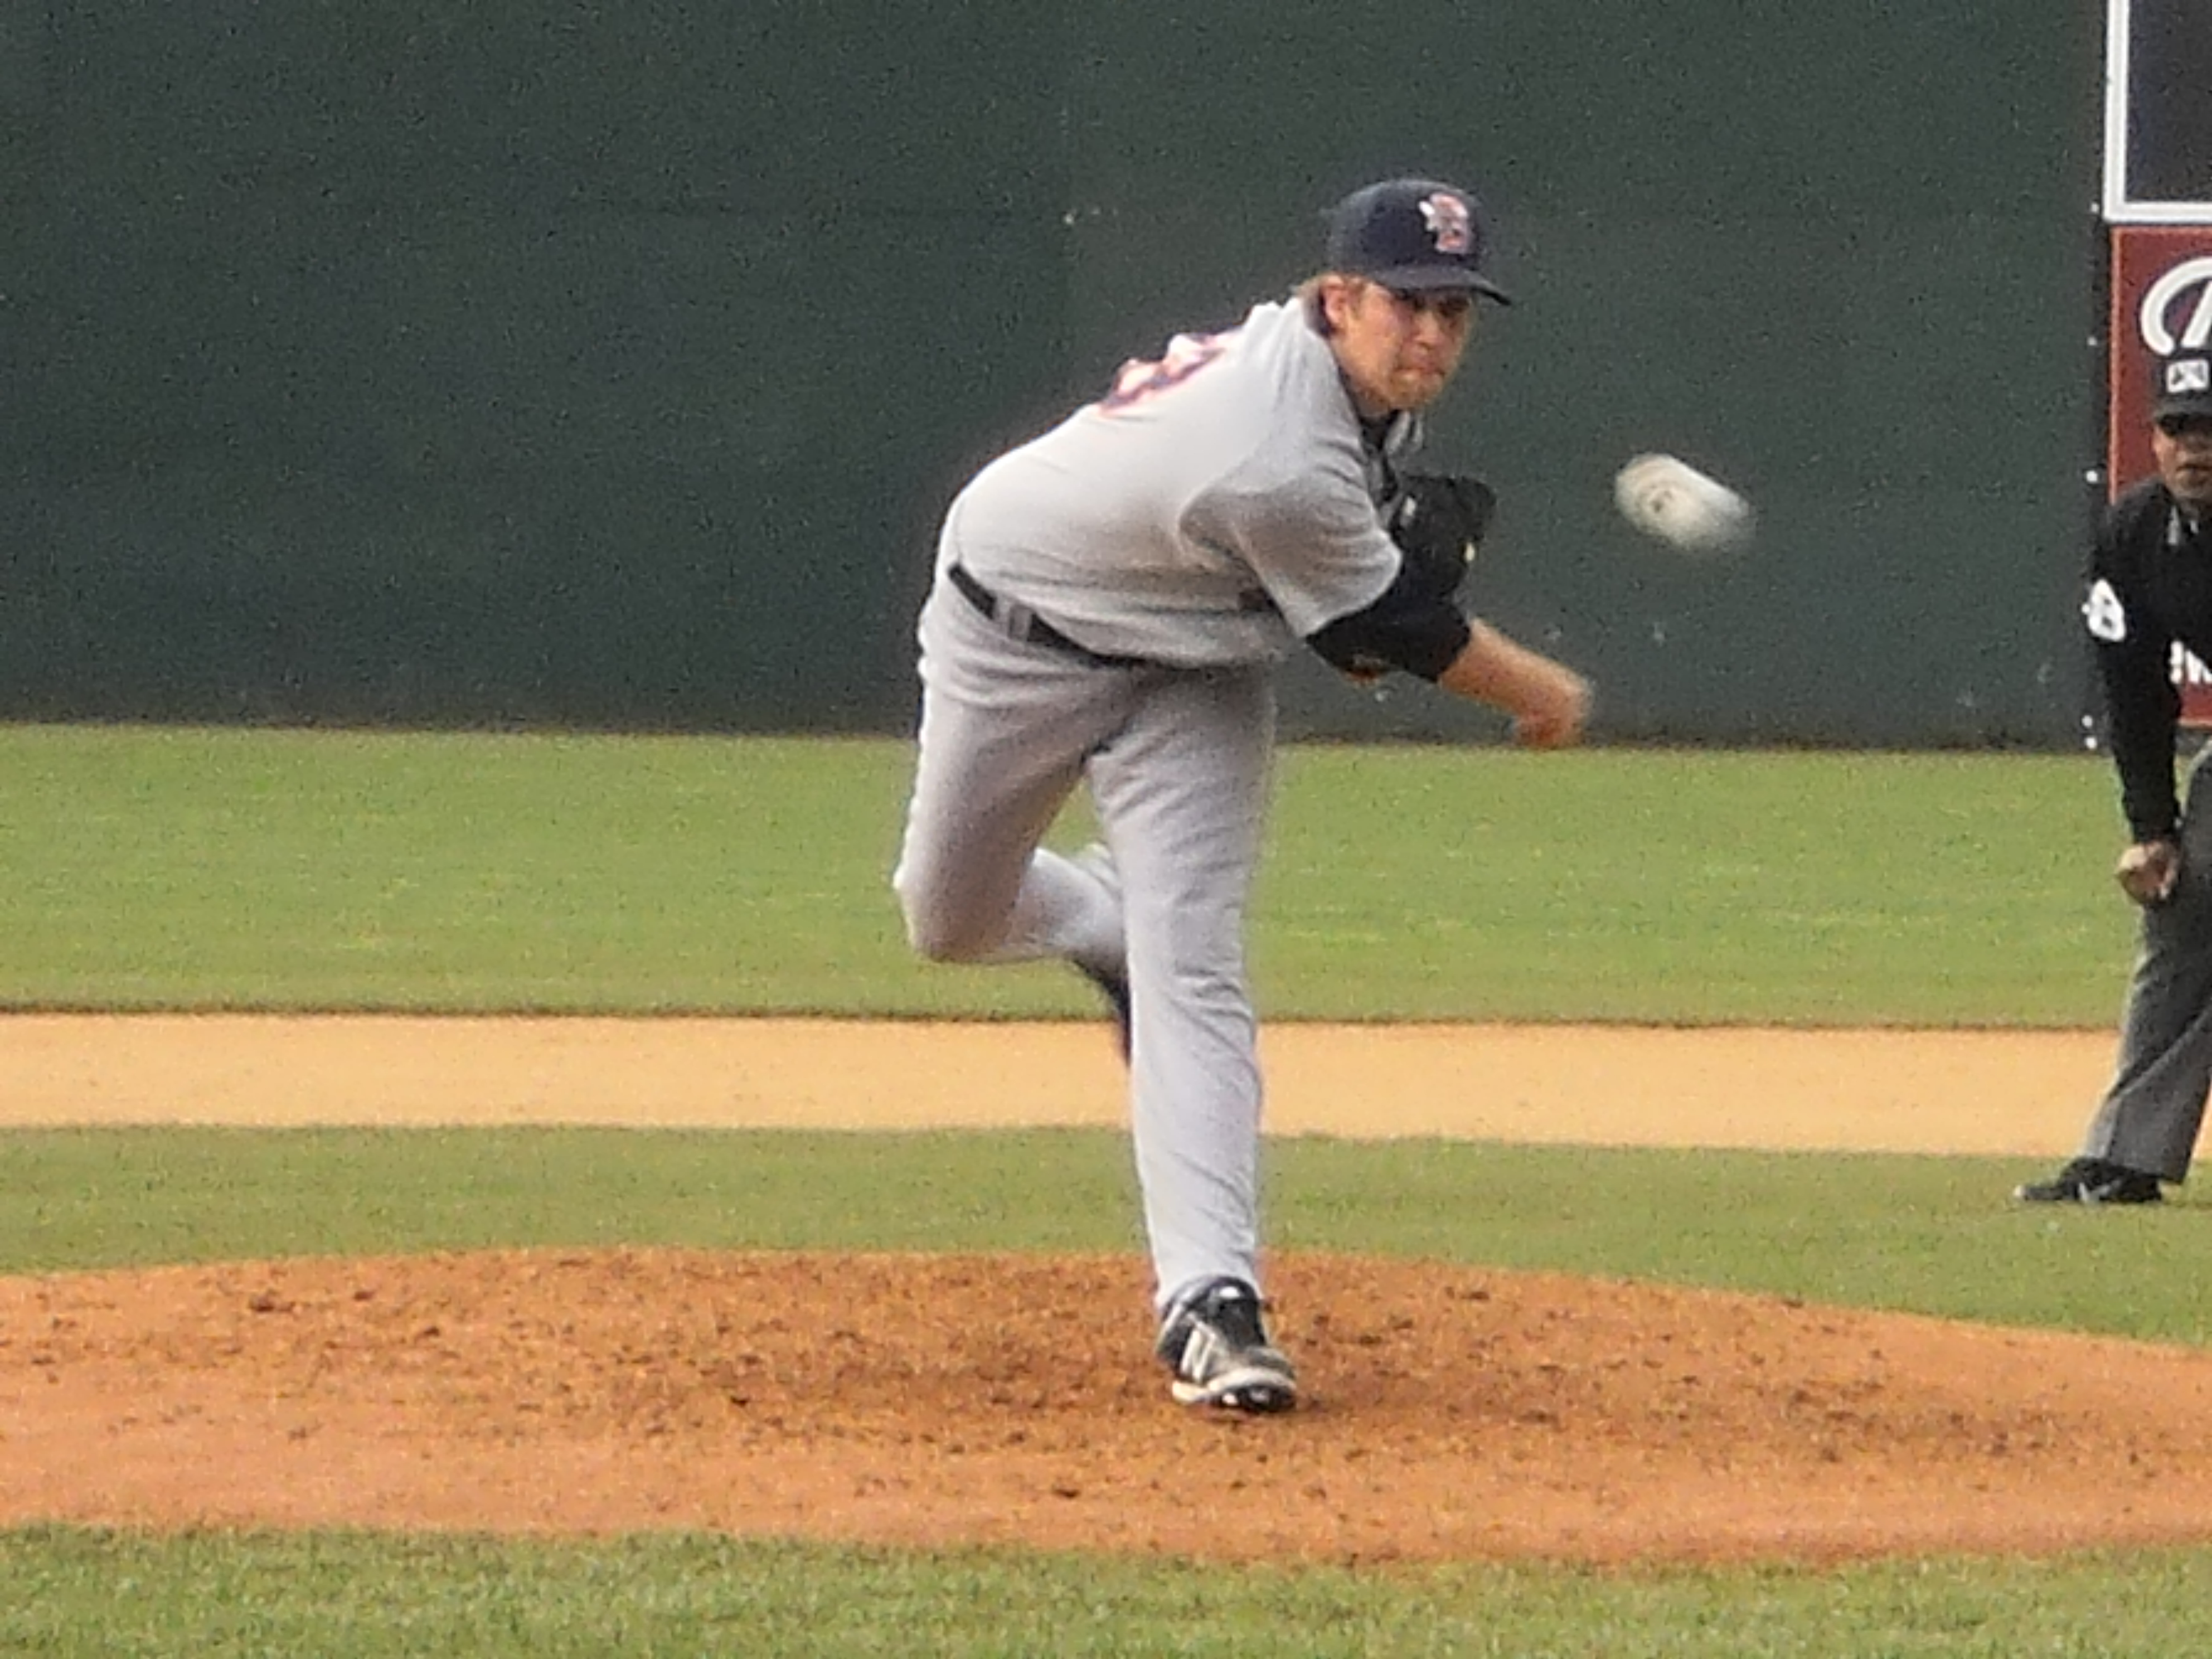 McHugh Solid, Satin Drills 2-Run Shot, 51′s Stay Undefeated In 6-1 Win